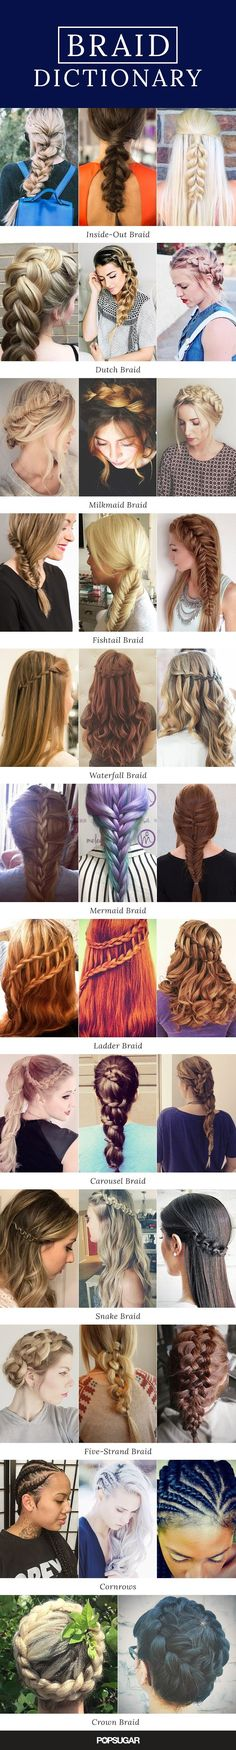 Pretty Hairstyles, Braided Hairstyles, Natural Hairstyles, Fashion Hairstyles, Wedding Hairstyles, Kid Hairstyles, Simple Hairstyles, Updo Hairstyle, Medium Hairstyles